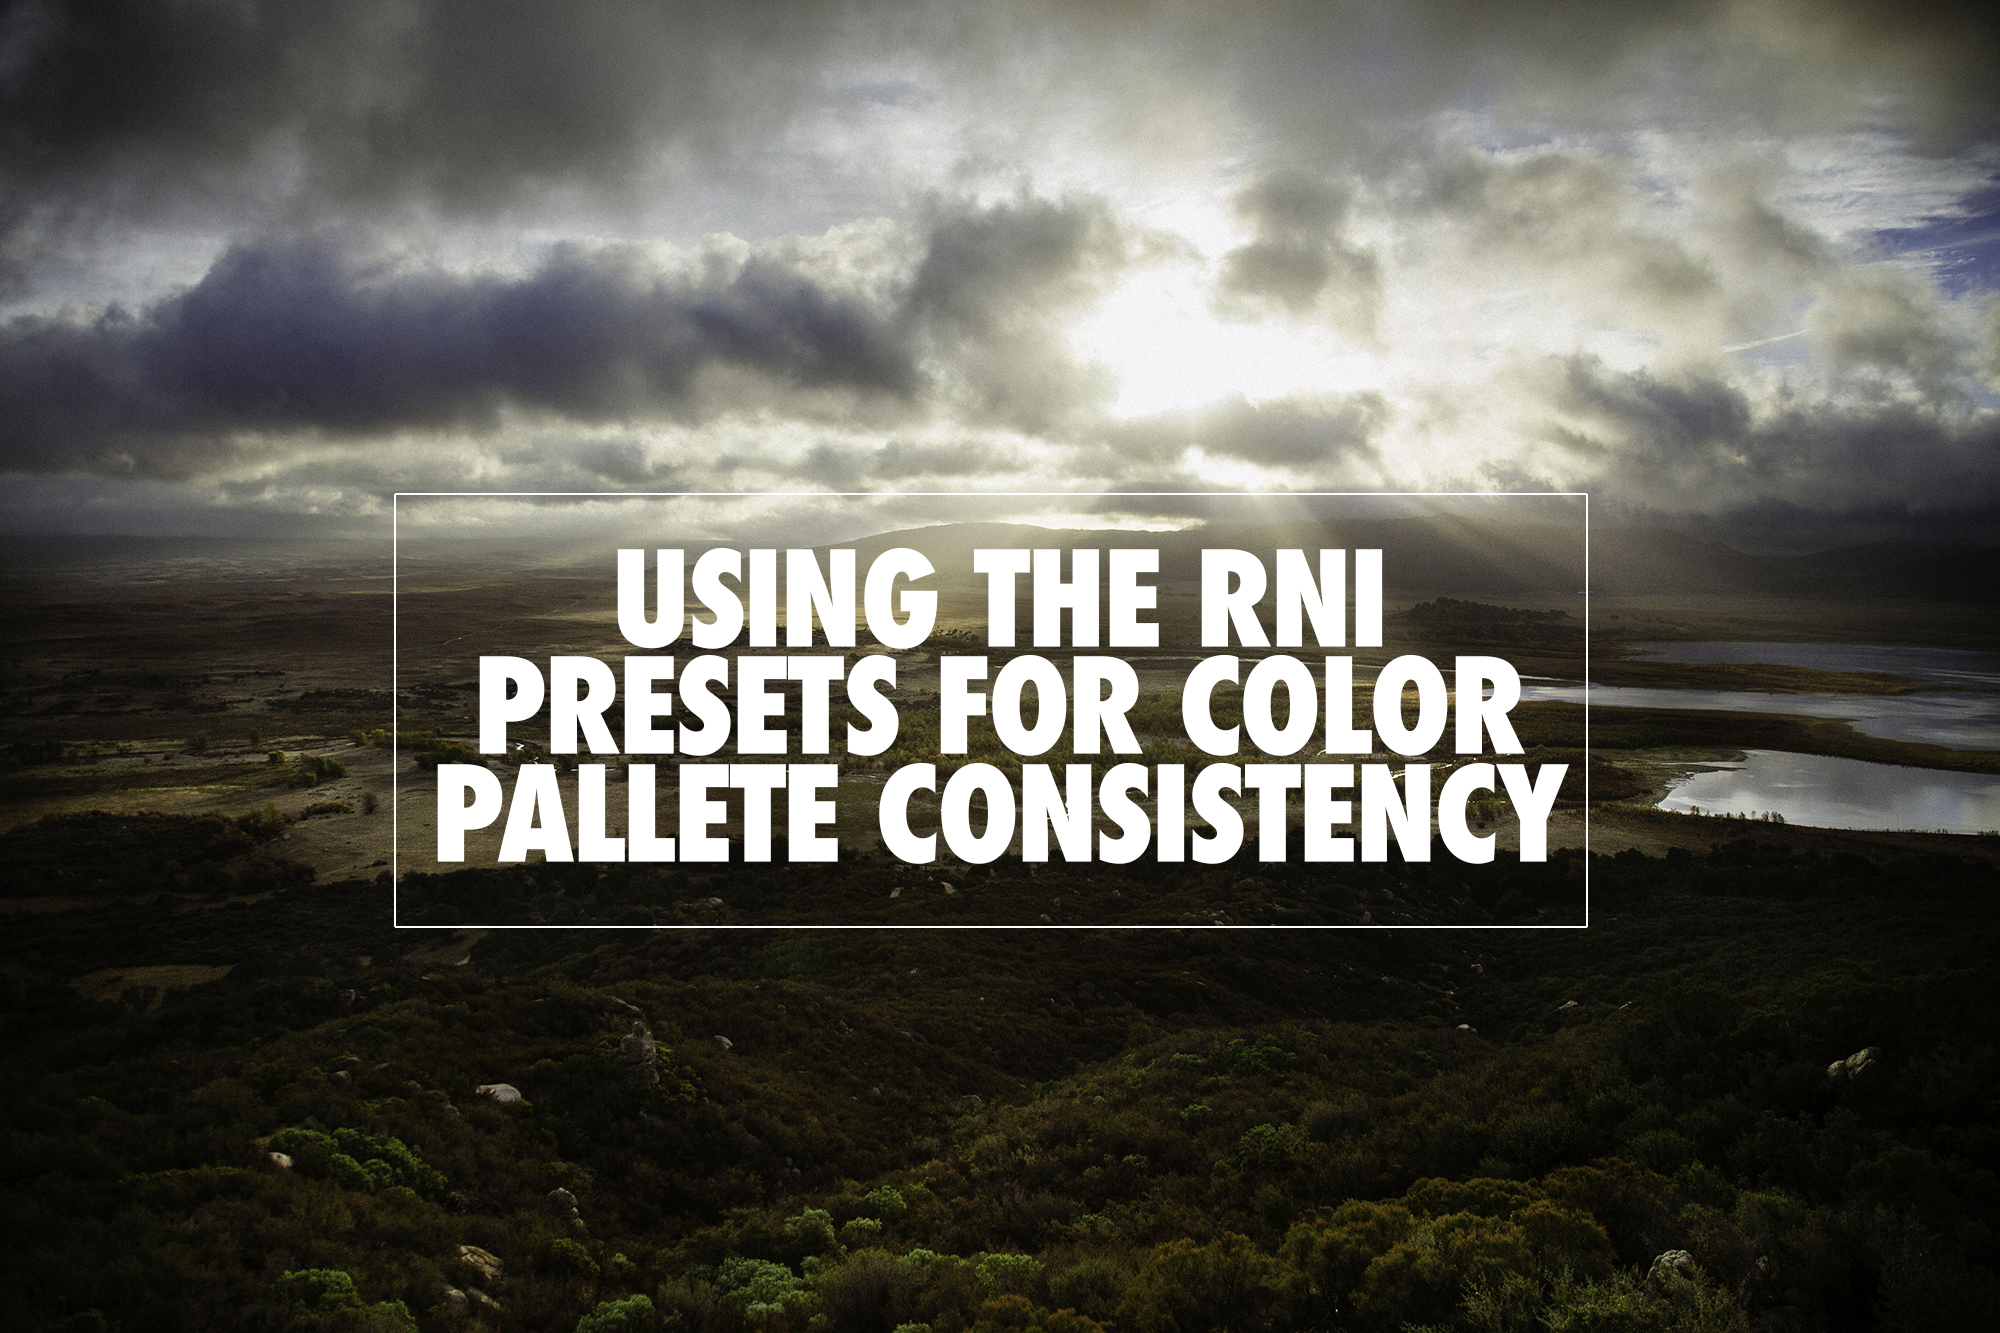 Using the RNI Presets for Color Palette Consistency